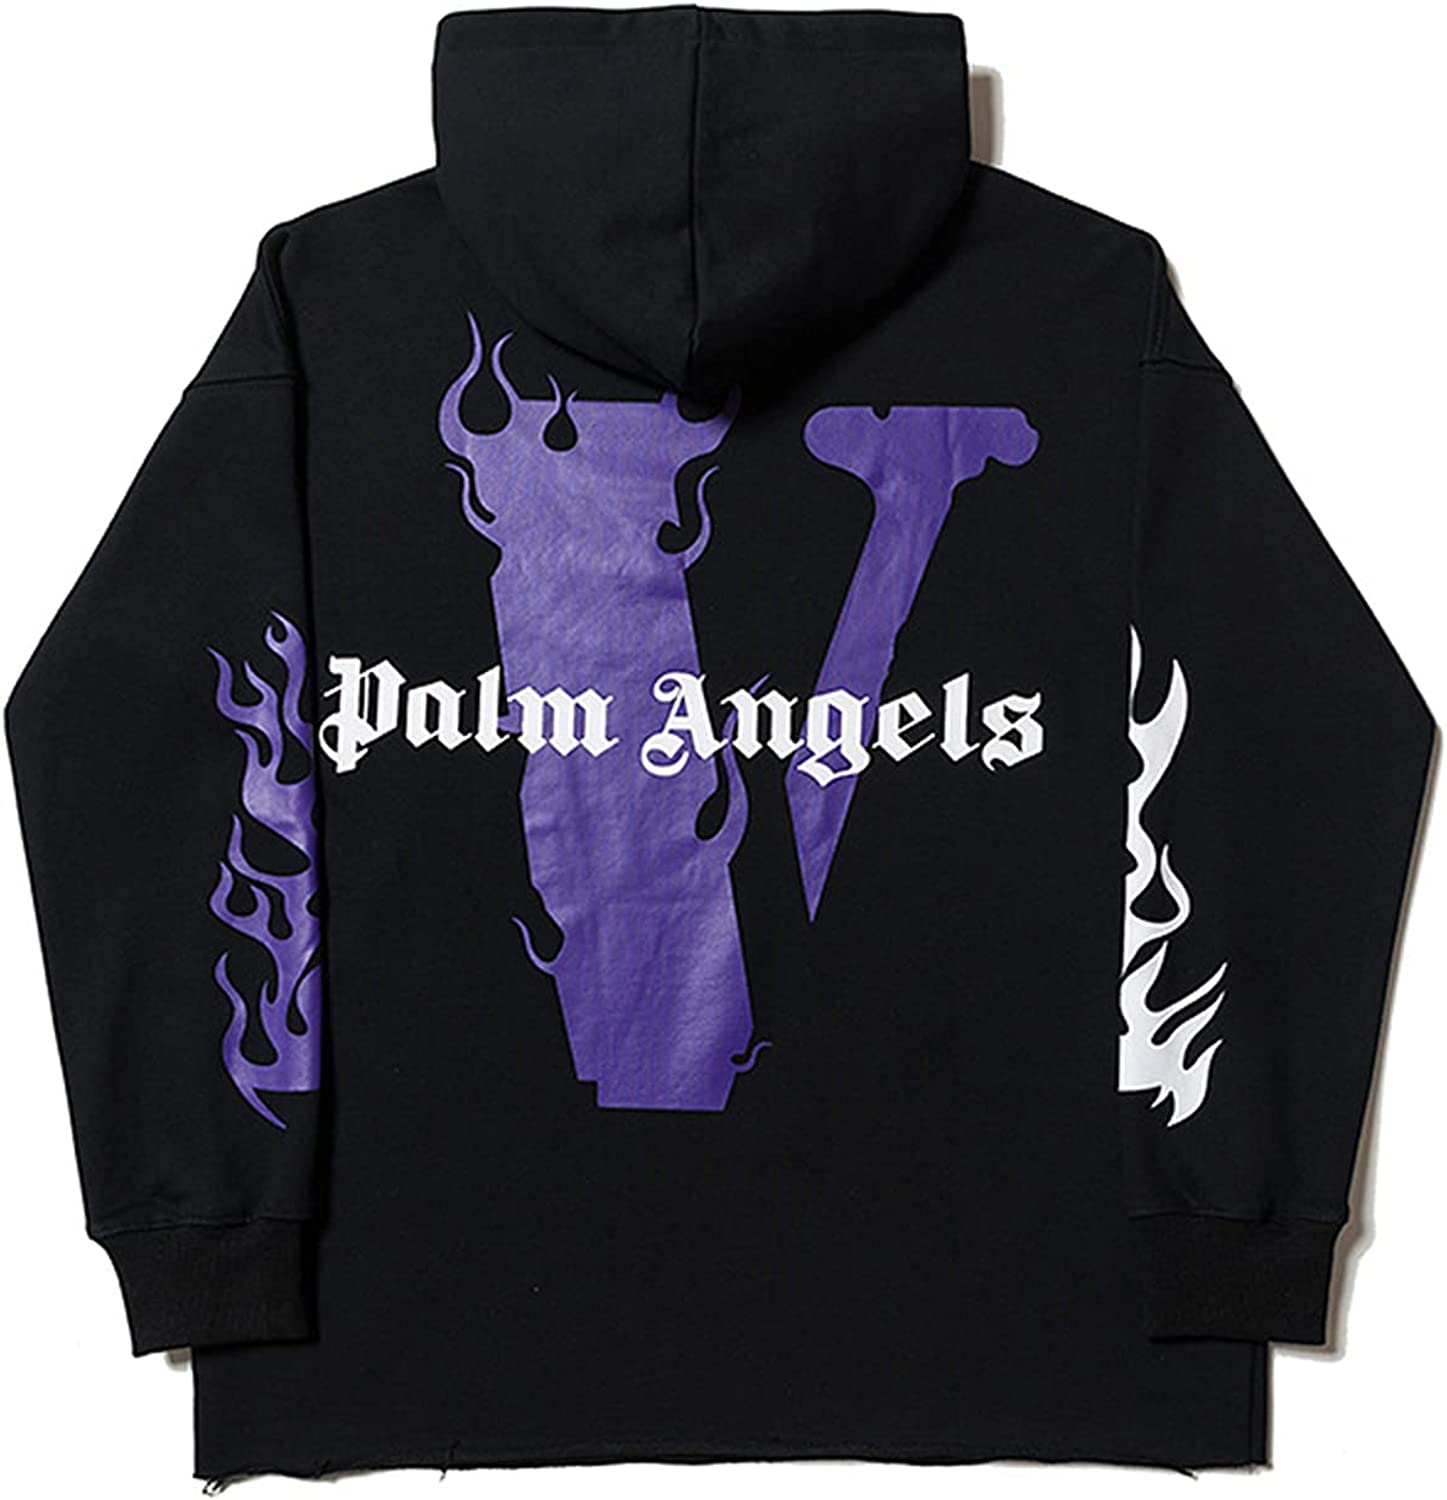 Aluo discount Excellent Vlone Hoodie Hip Hop Big Street Pullover Ho Trend Fashion V